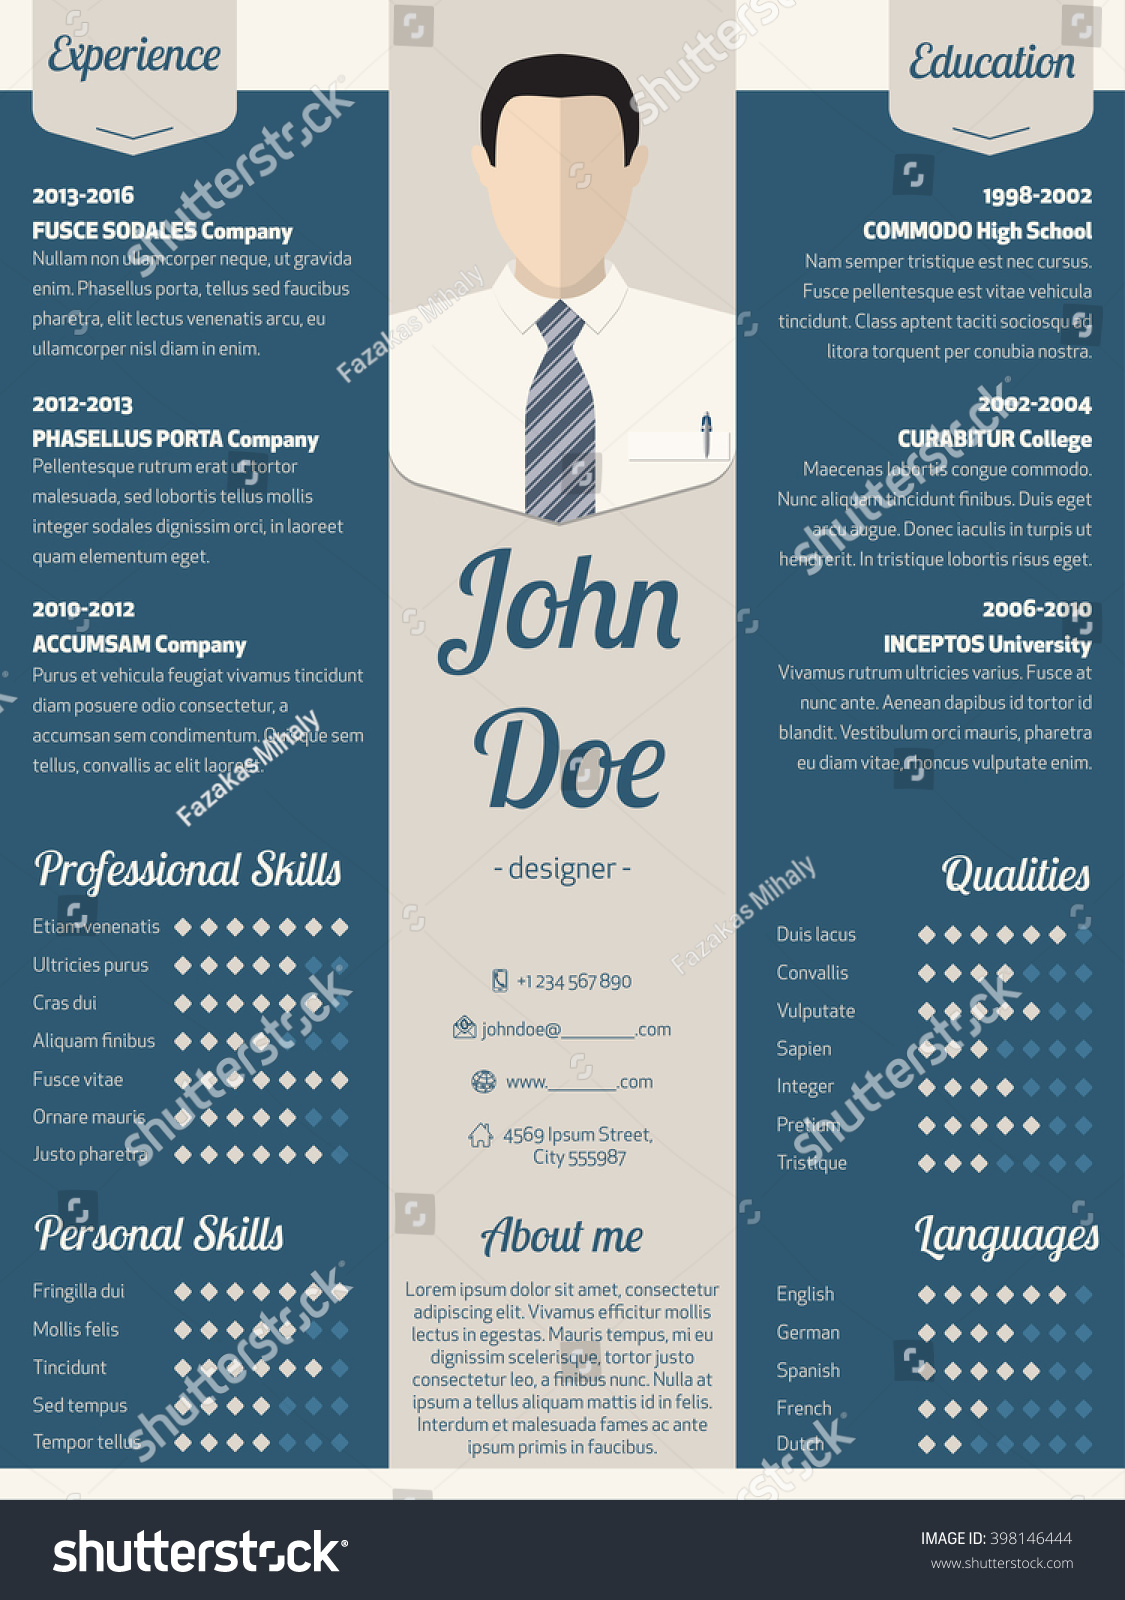 new modern resume cv curriculum vitae template design in